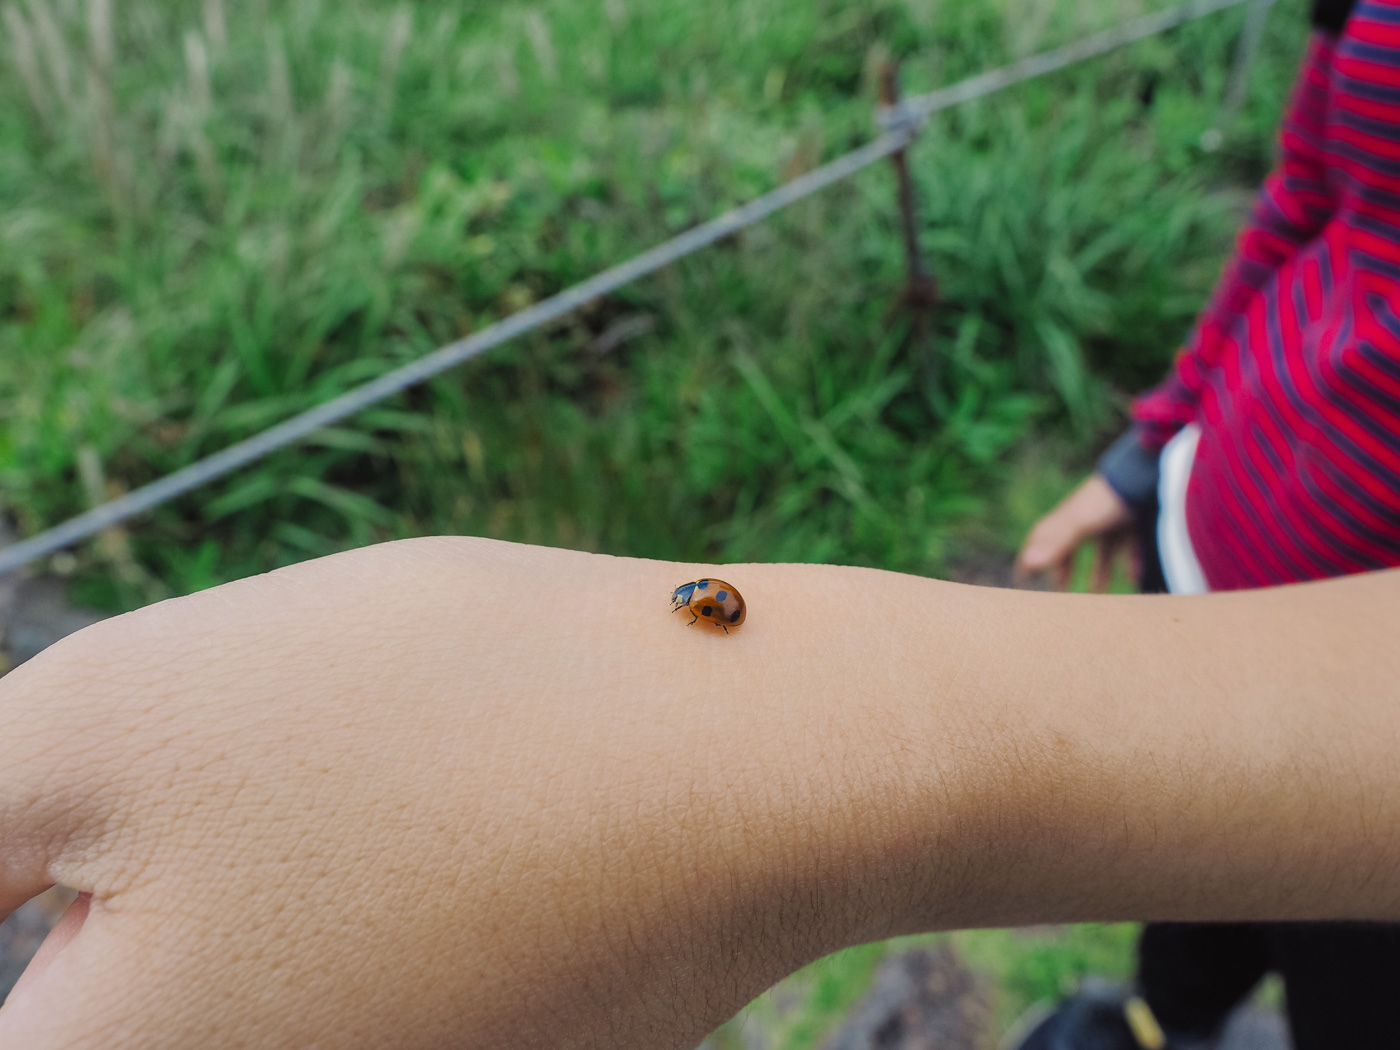 Korea - Mt Hallasan - Lady bird on wy's hand